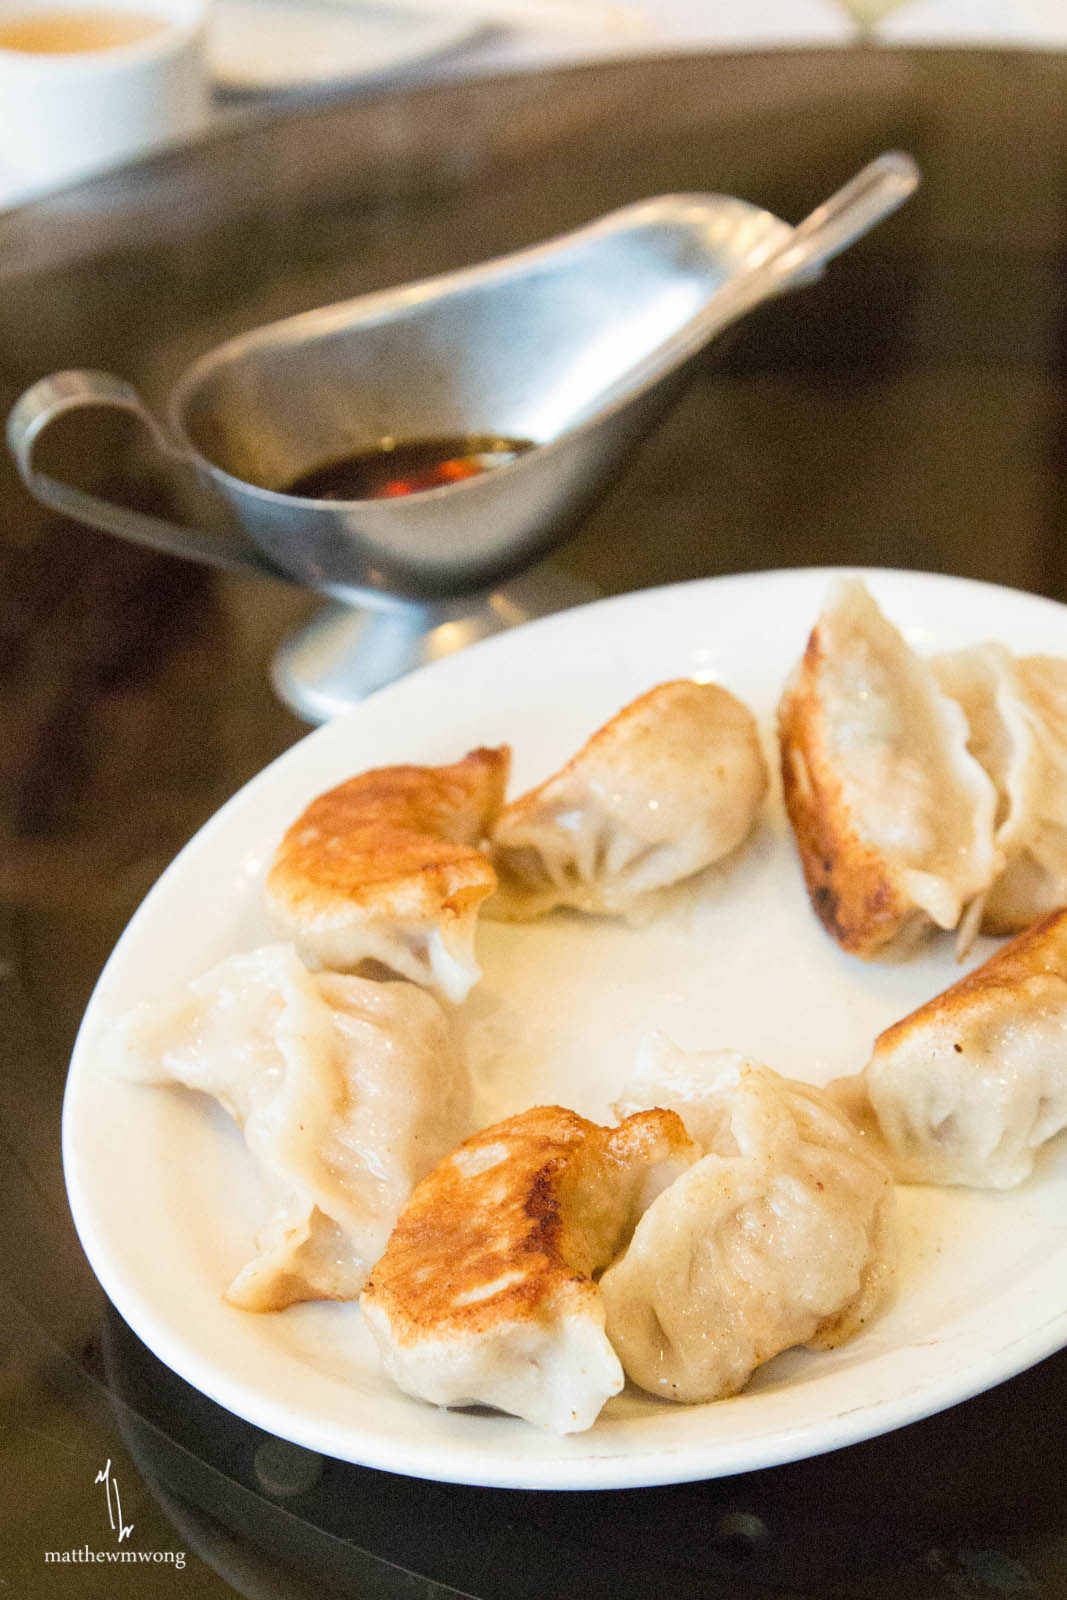 Woh Tiep aka Pot Stickers with Chili Dipping sauce